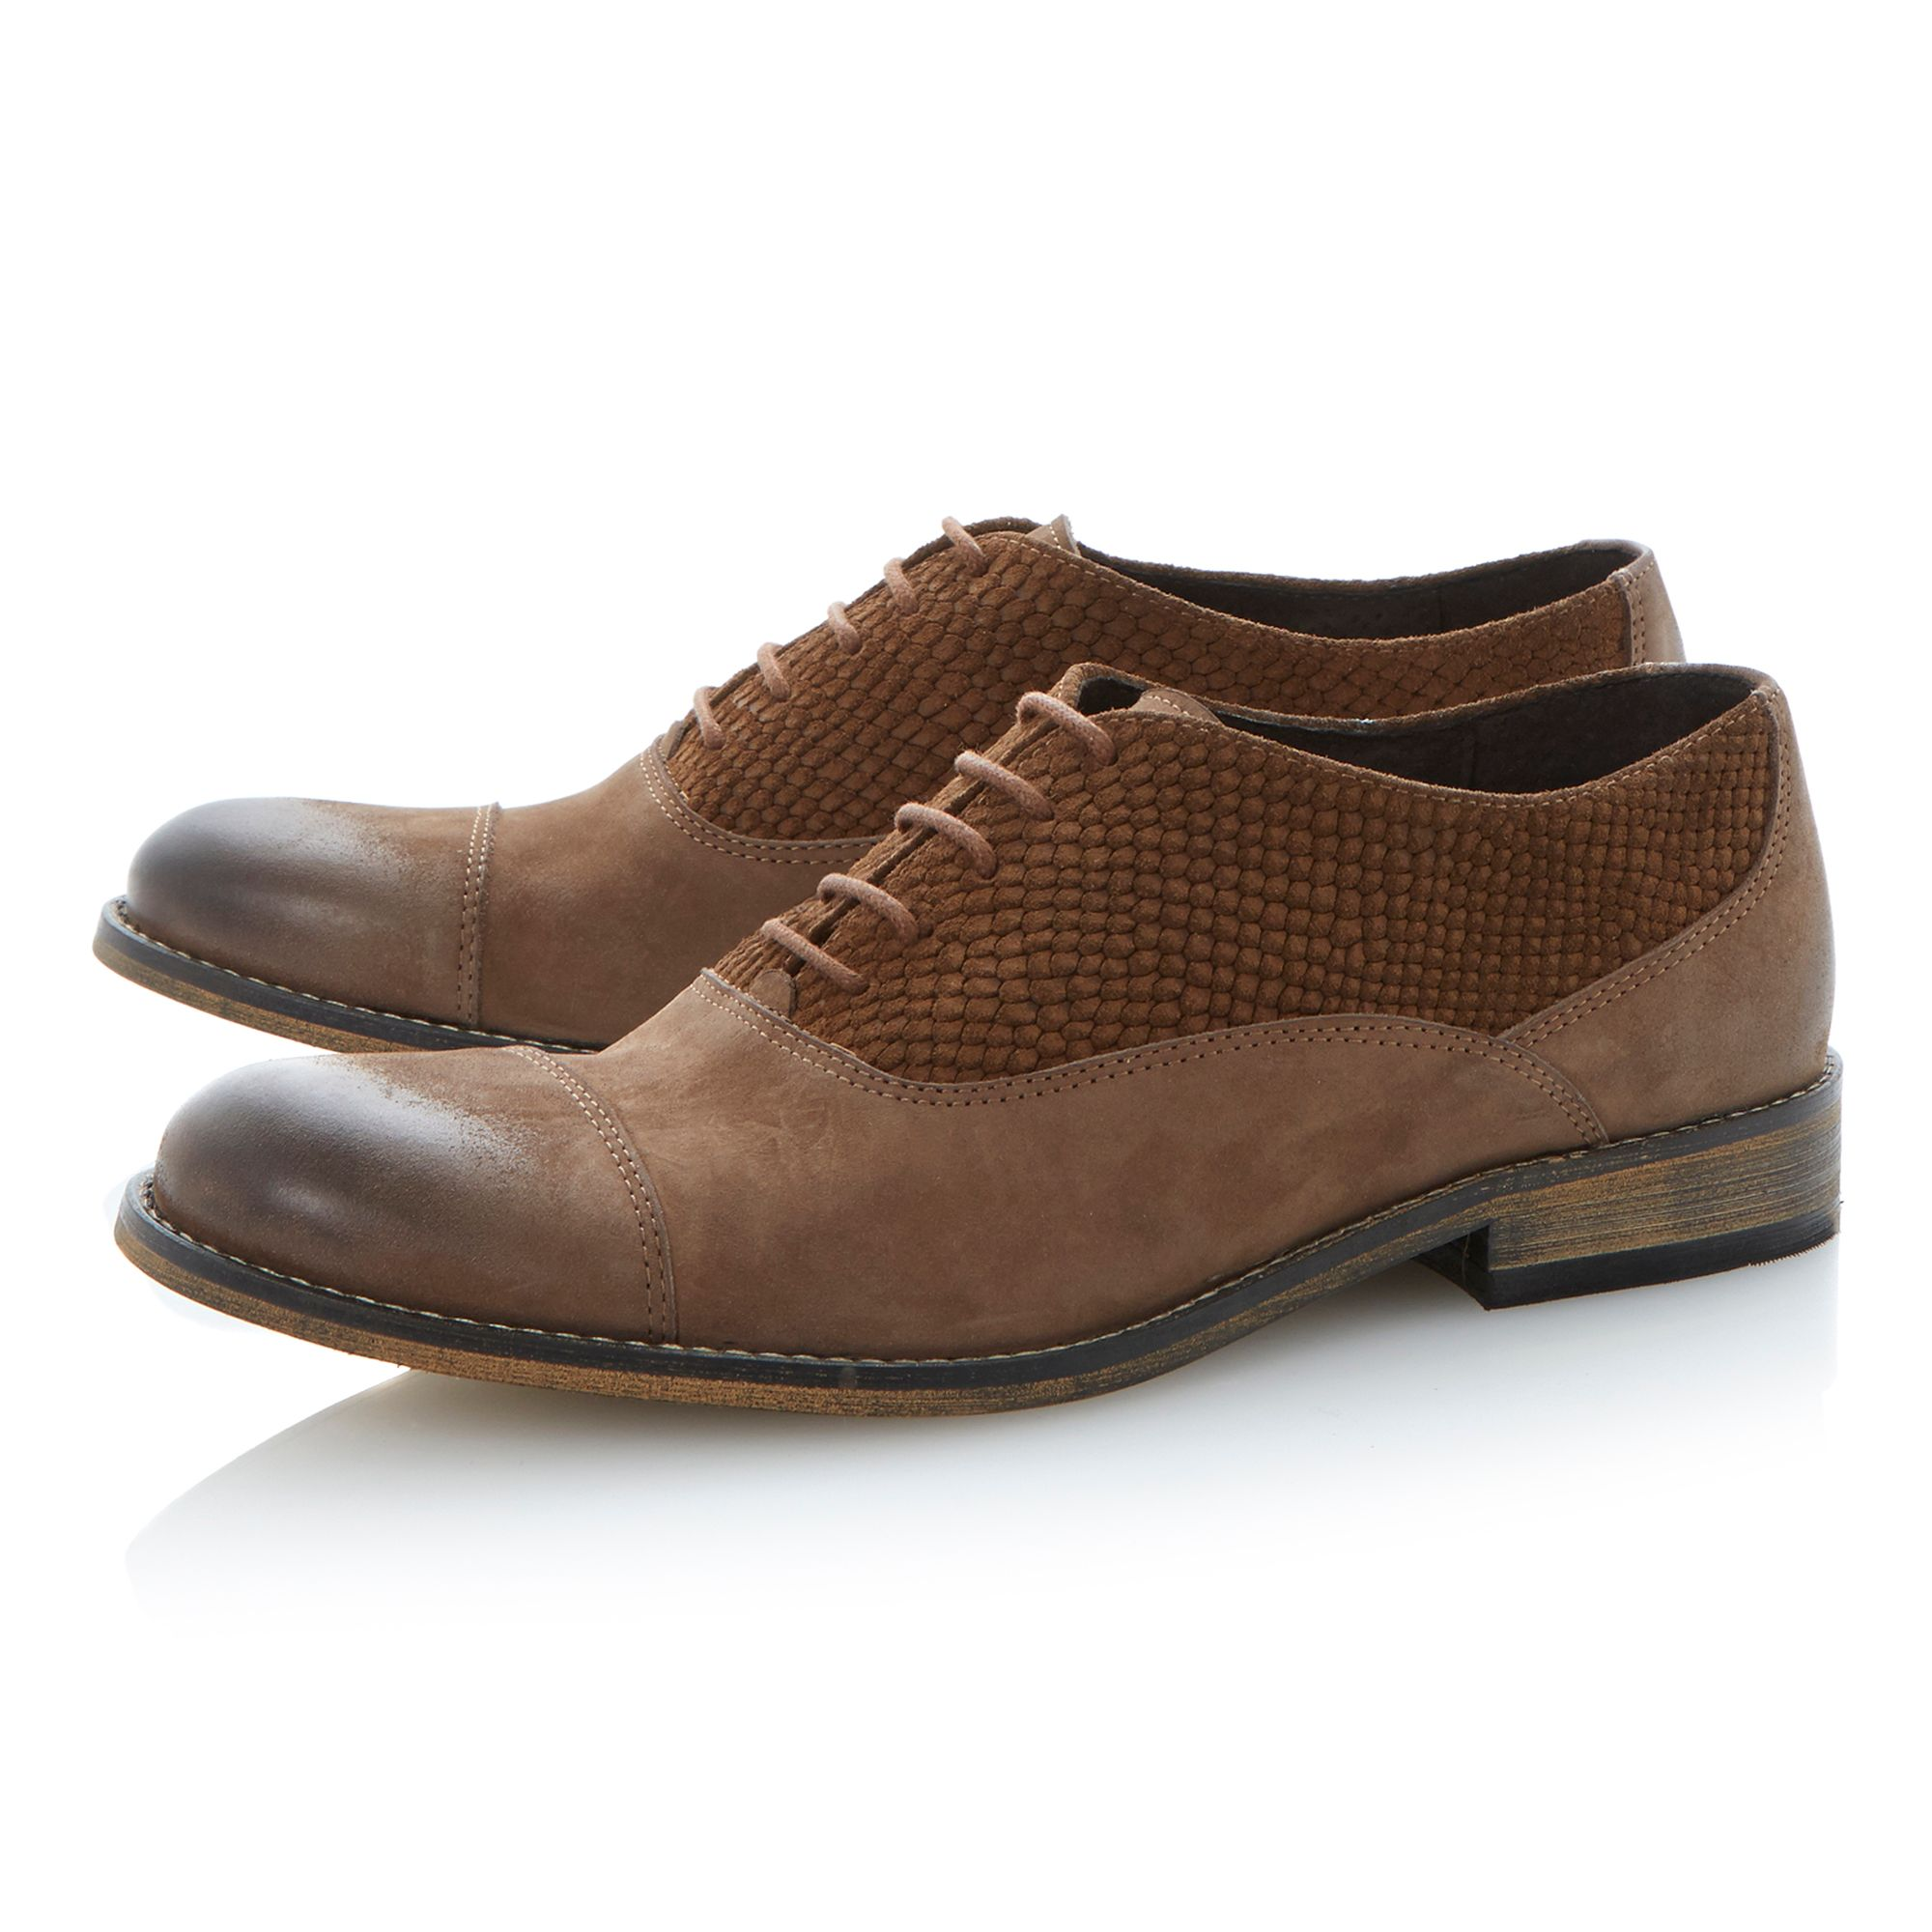 Bravado lace up textured facing toecap shoes